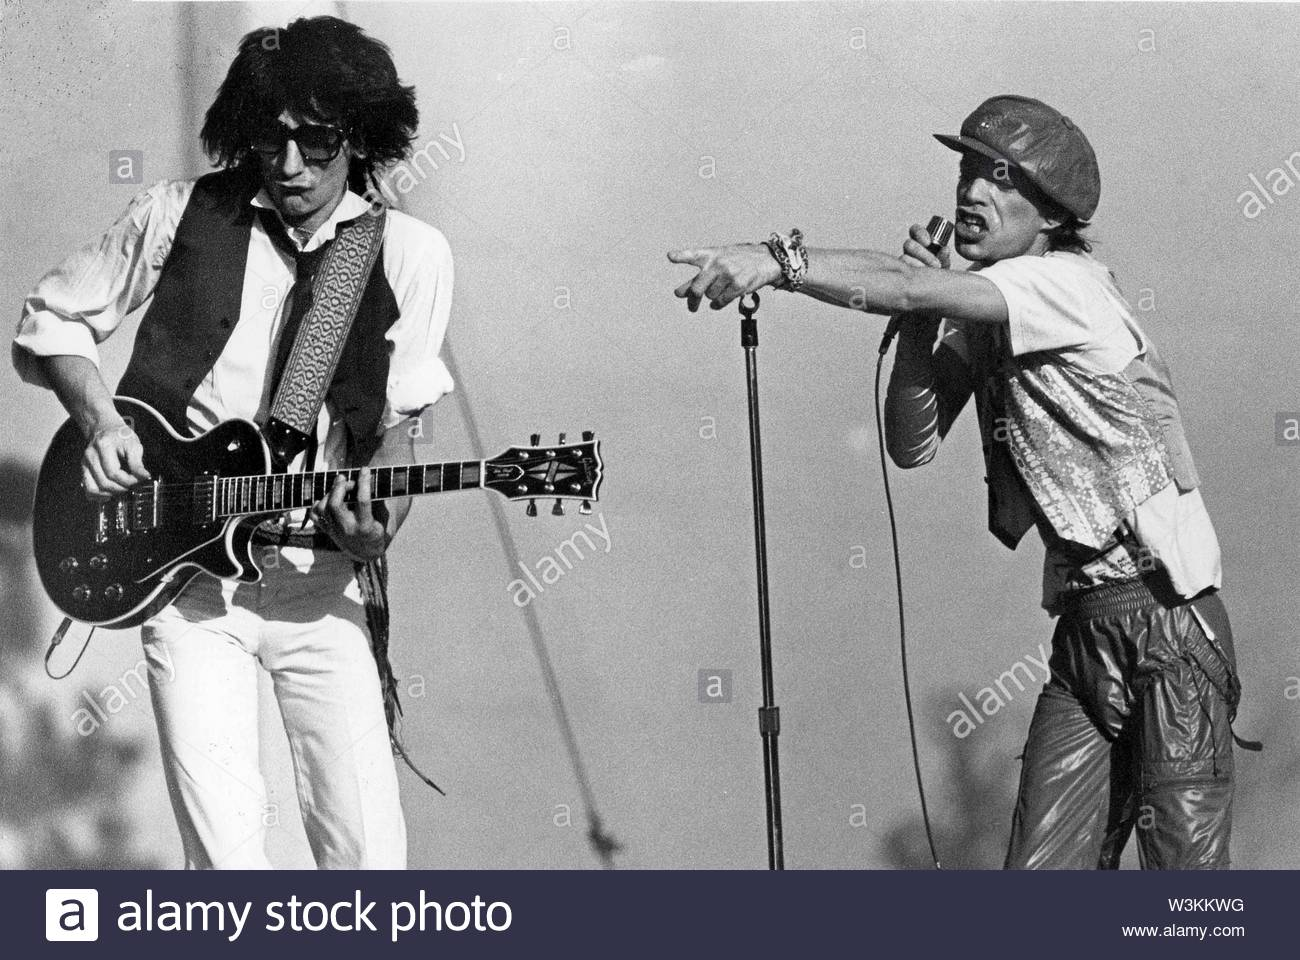 Ron Wood With Mick Jagger Of Rolling Stones In L.A. 1978. Credit: 381393_Globe Photos/MediaPunch - Stock Image